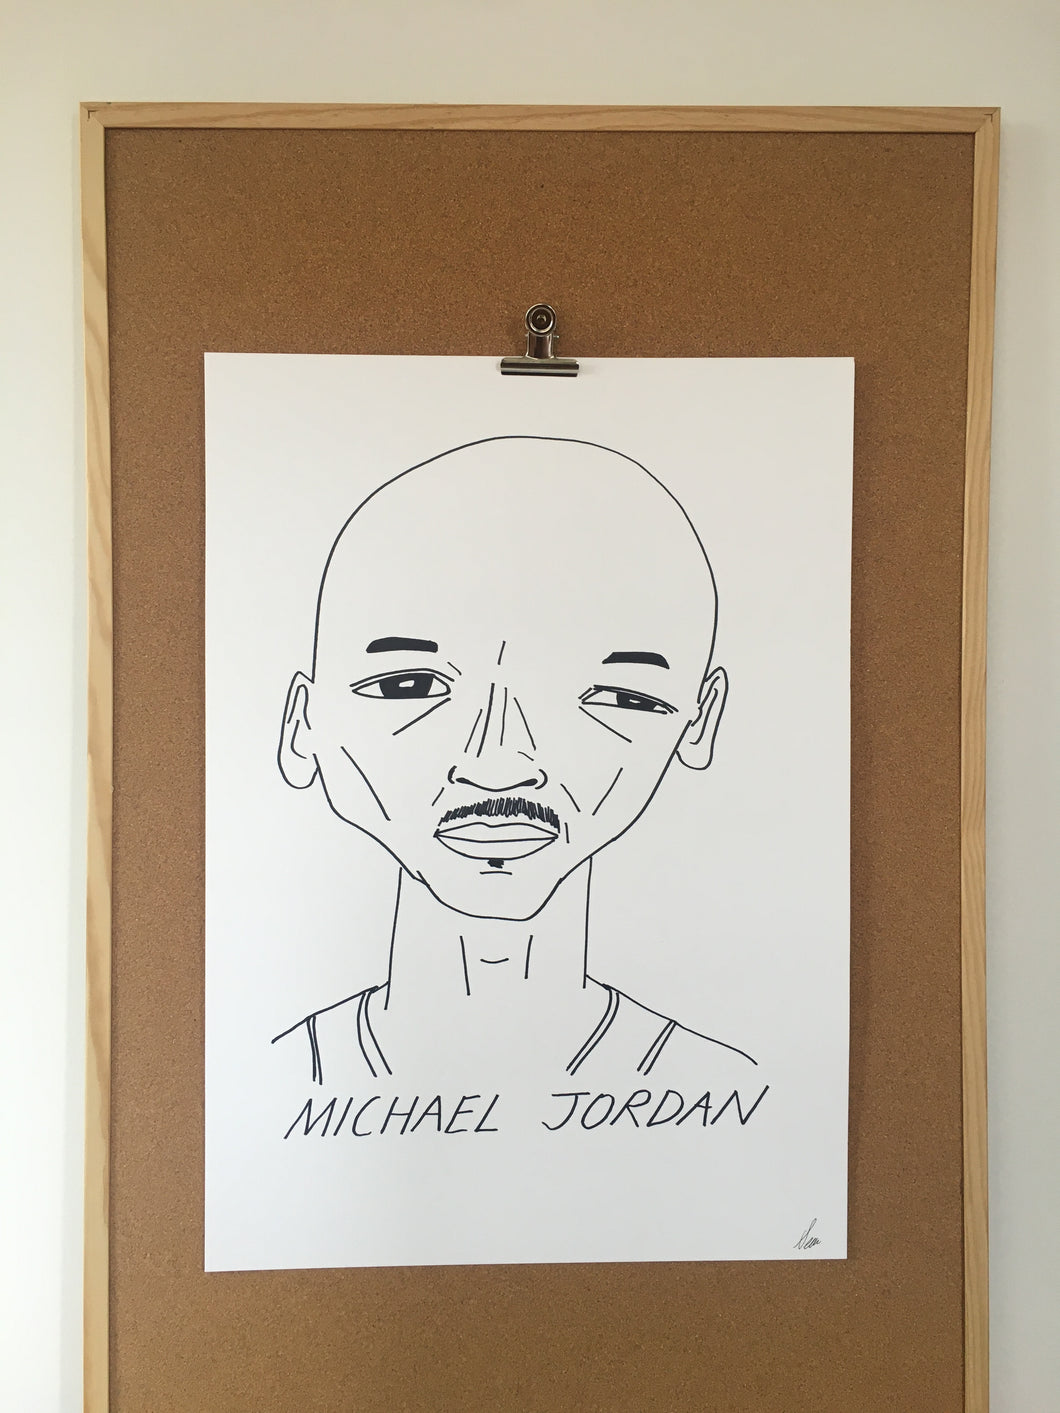 Badly Drawn Michael Jordan - Original Drawing - A2 - signed by the artist.